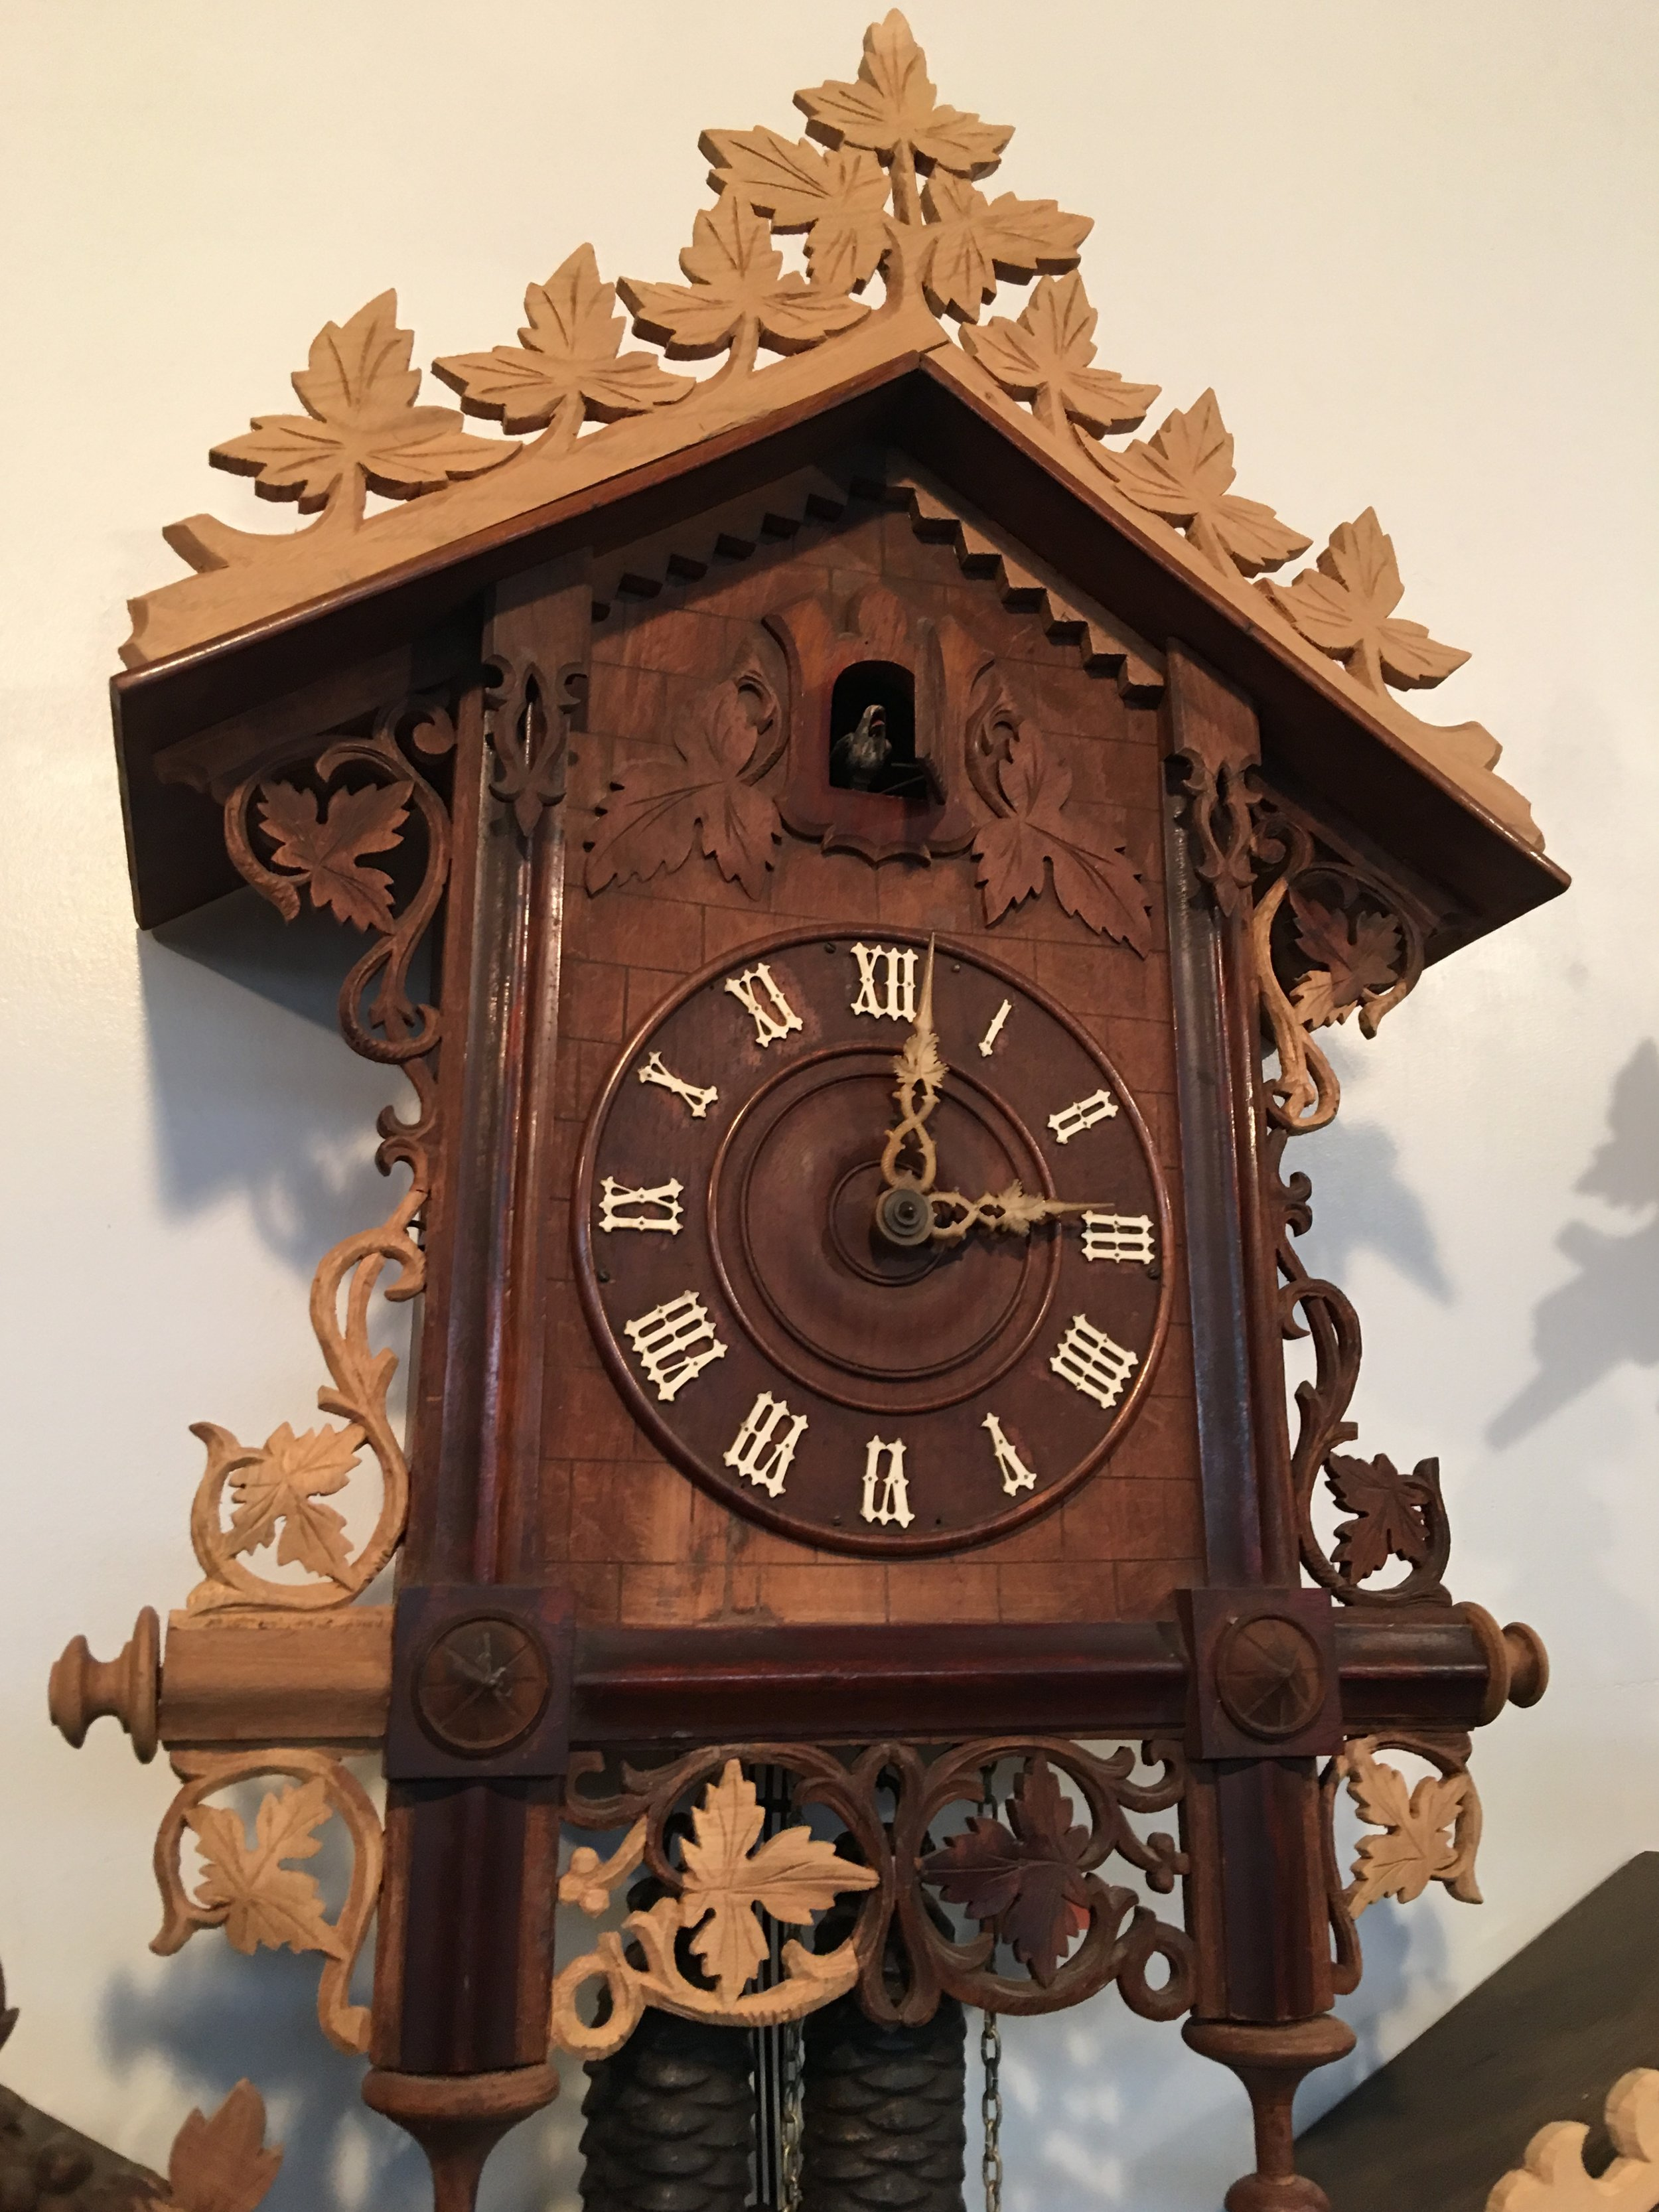 One of the many clocks repaired by Jim. The light oak color are the hand crafted replacement pieces.